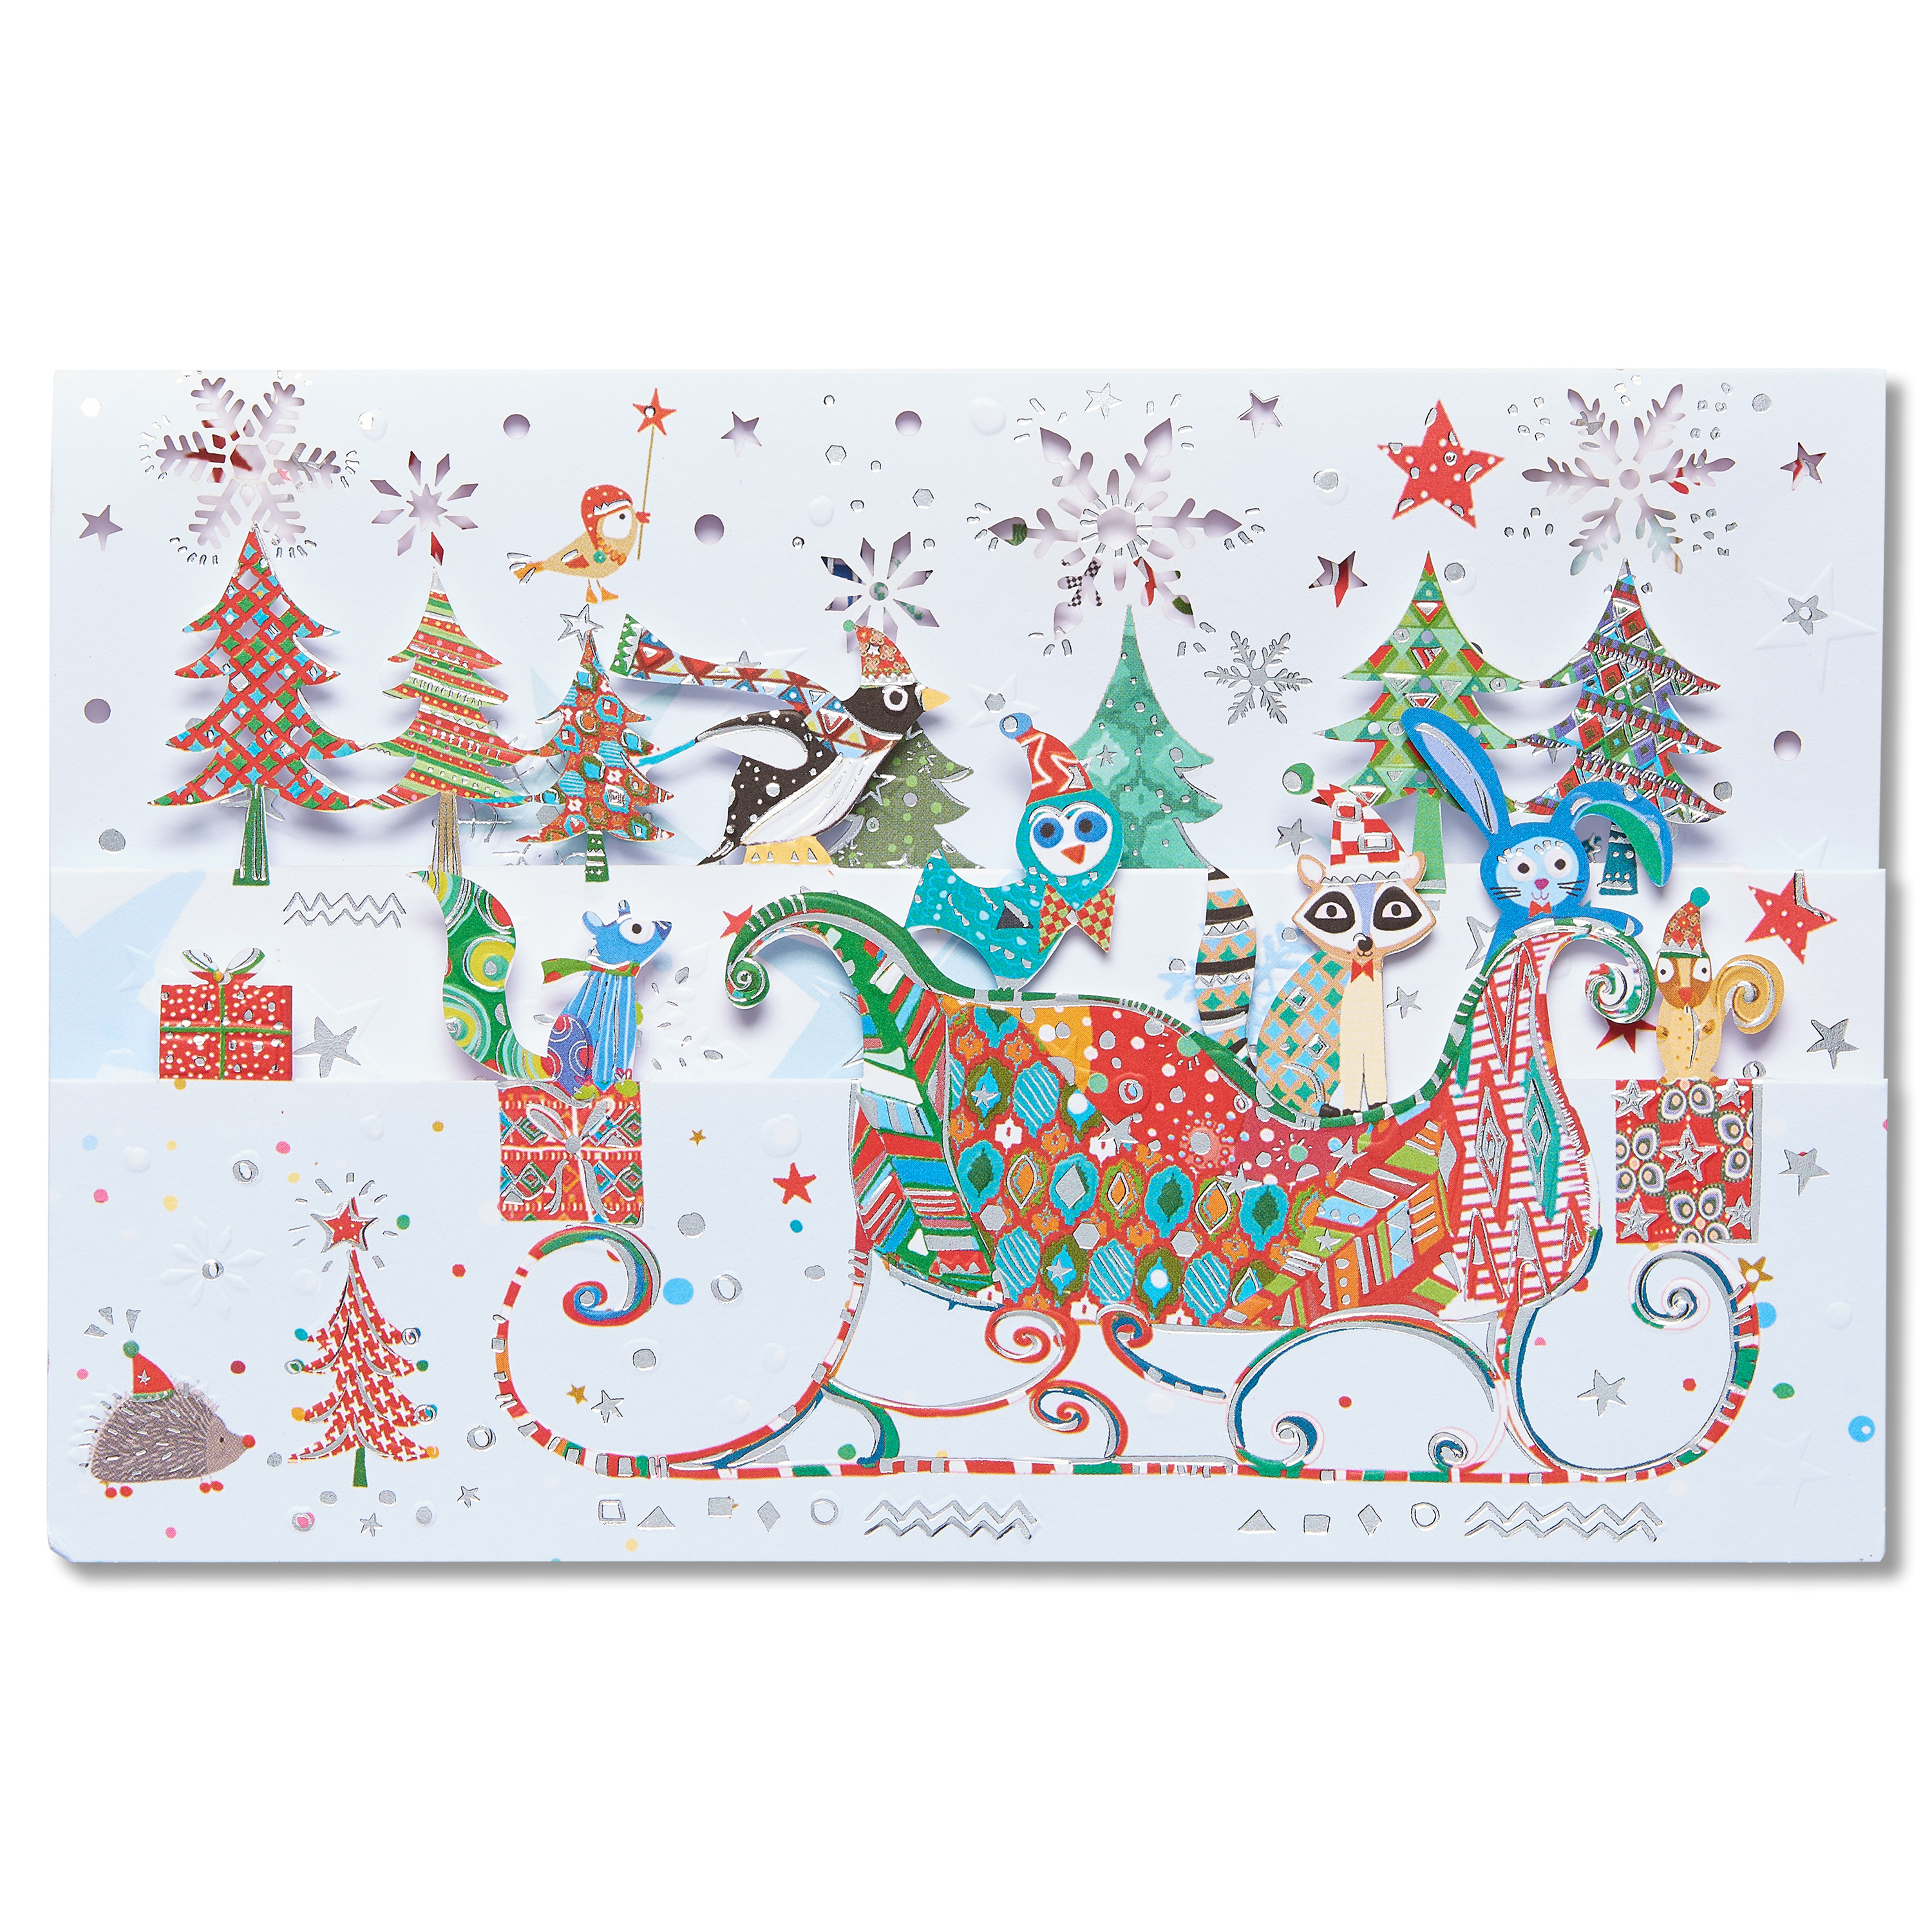 AMERICAN GREETINGS® American Greetings Christmas Wishes Christmas Card with Foil